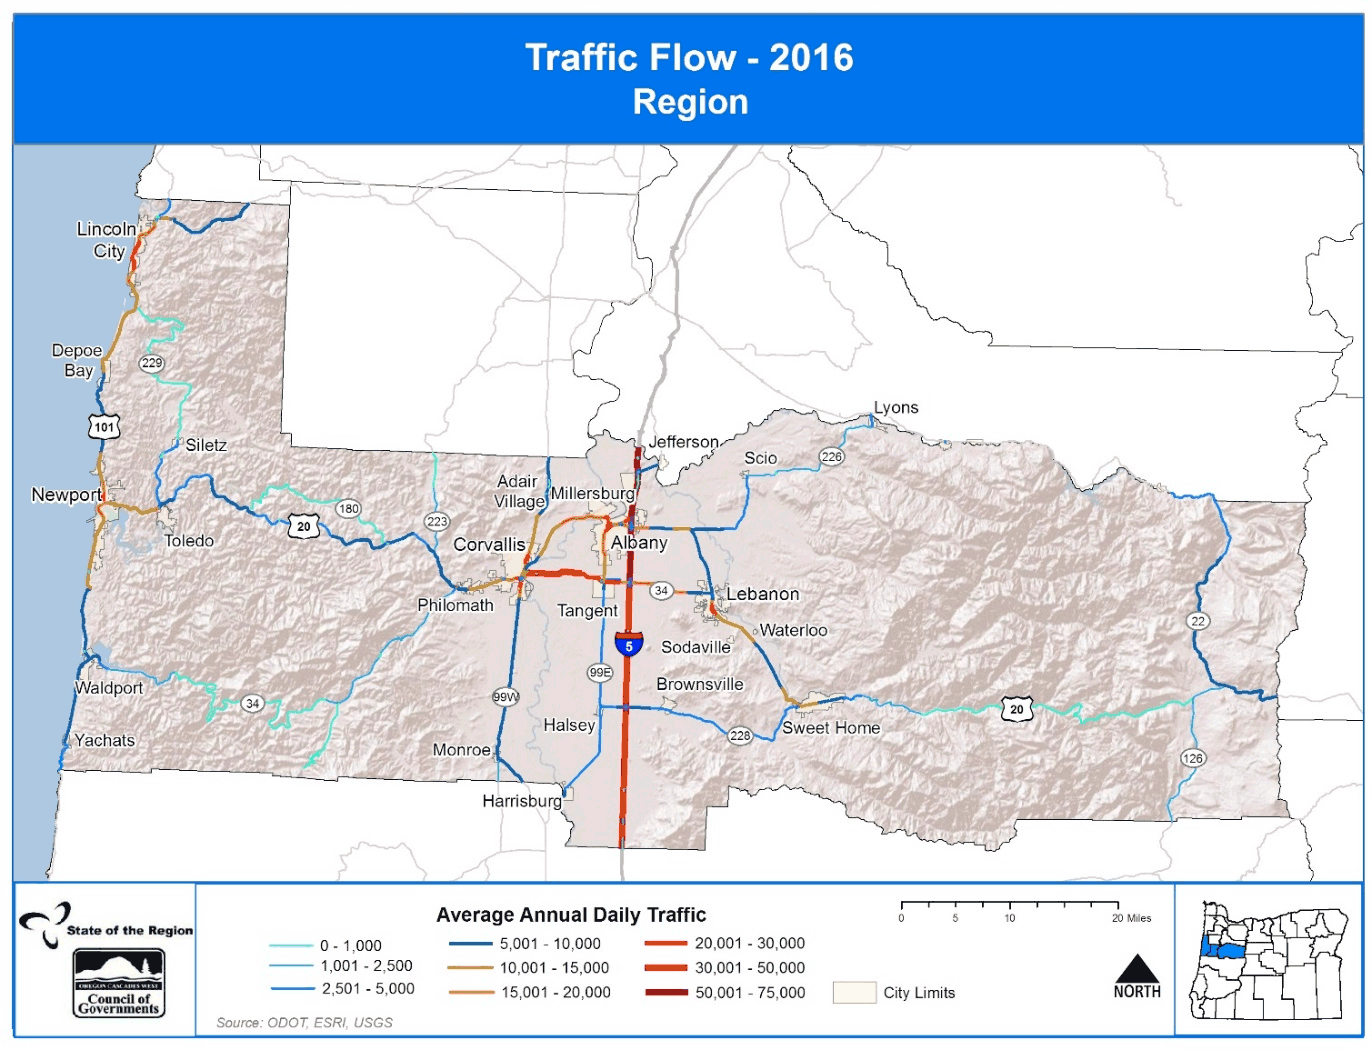 Map of Traffic Flow 2016